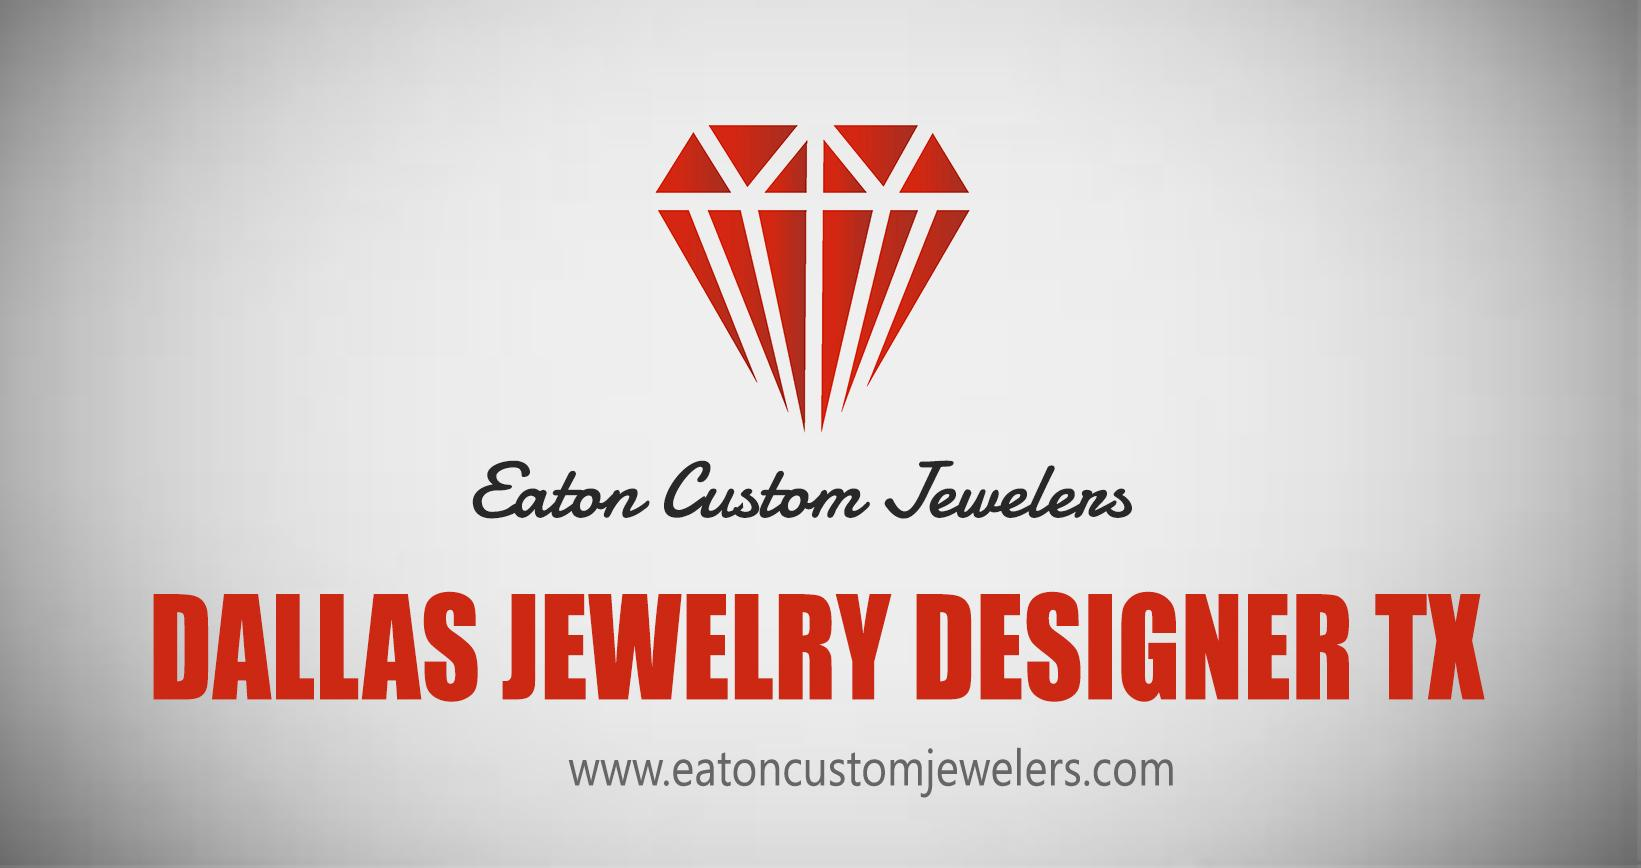 Dallas jewelry designer tx